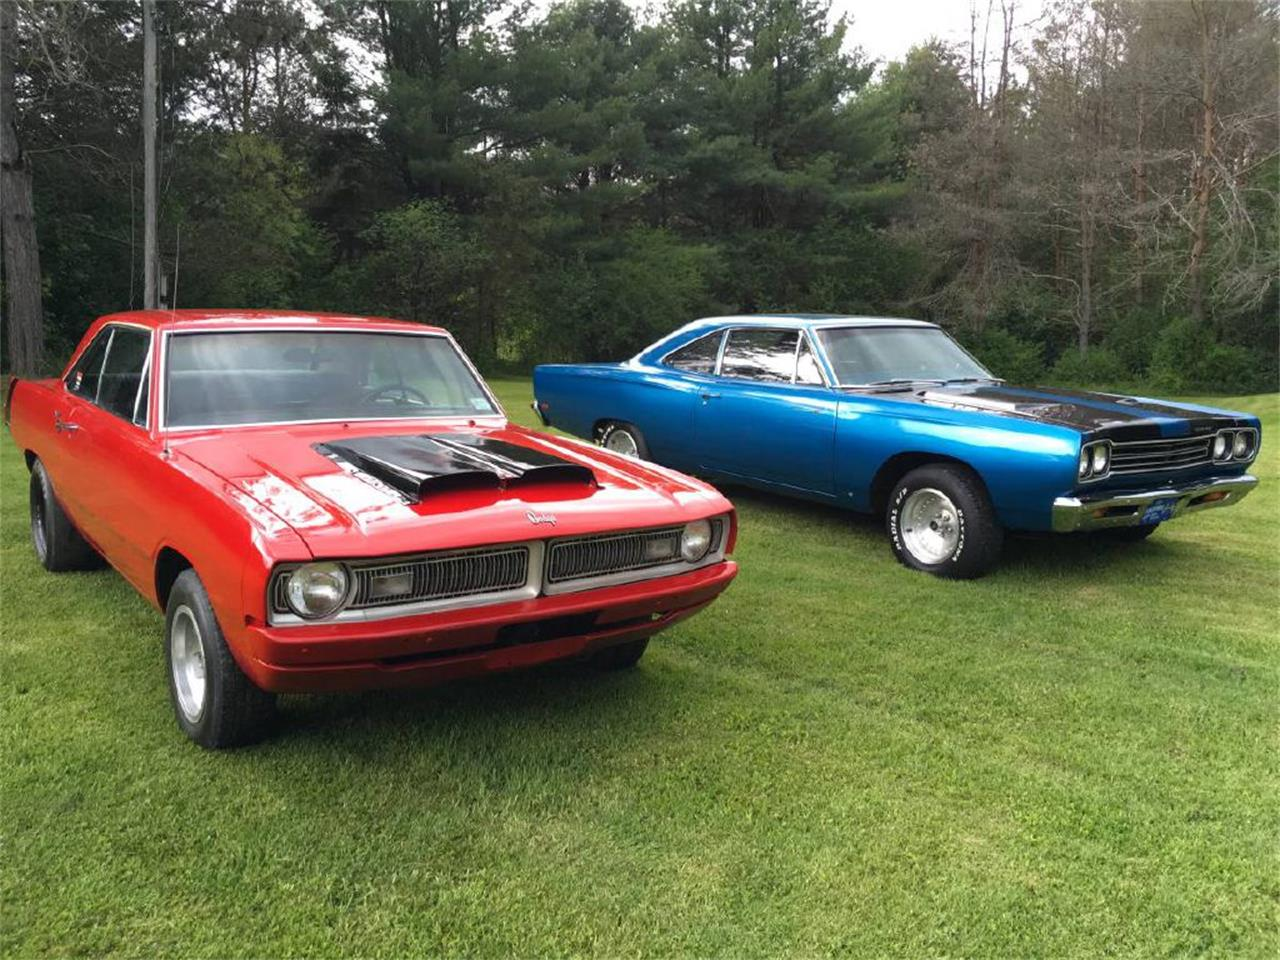 1970 Dodge Dart (CC-1229469) for sale in West Pittston, Pennsylvania